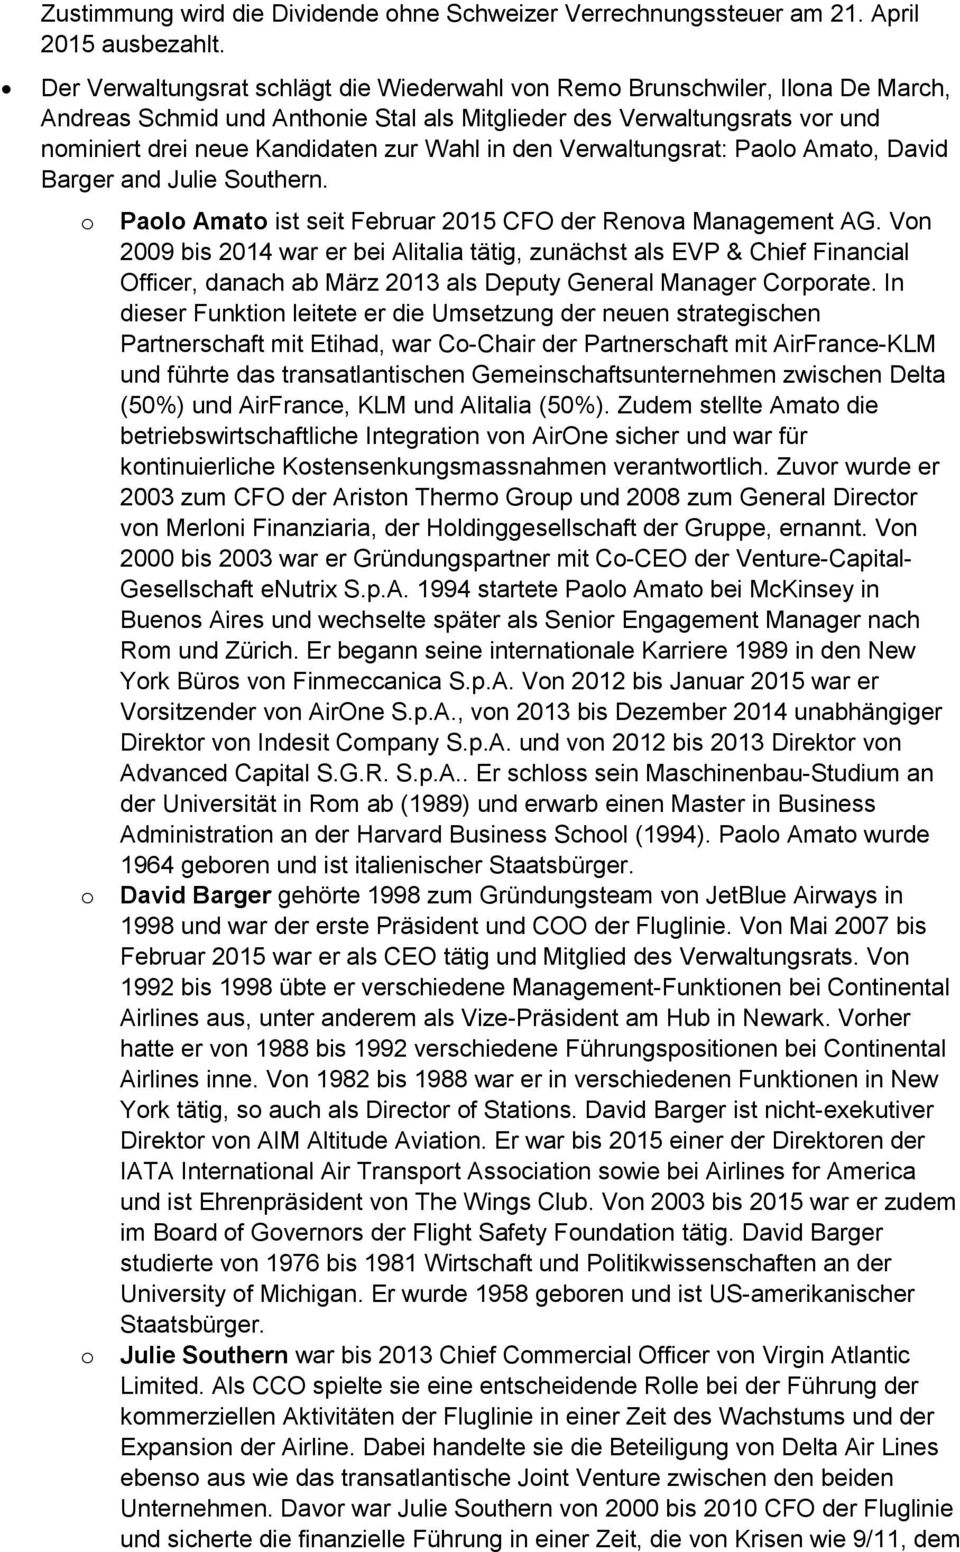 den Verwaltungsrat: Paolo Amato, David Barger and Julie Southern. o o o Paolo Amato ist seit Februar 2015 CFO der Renova Management AG.